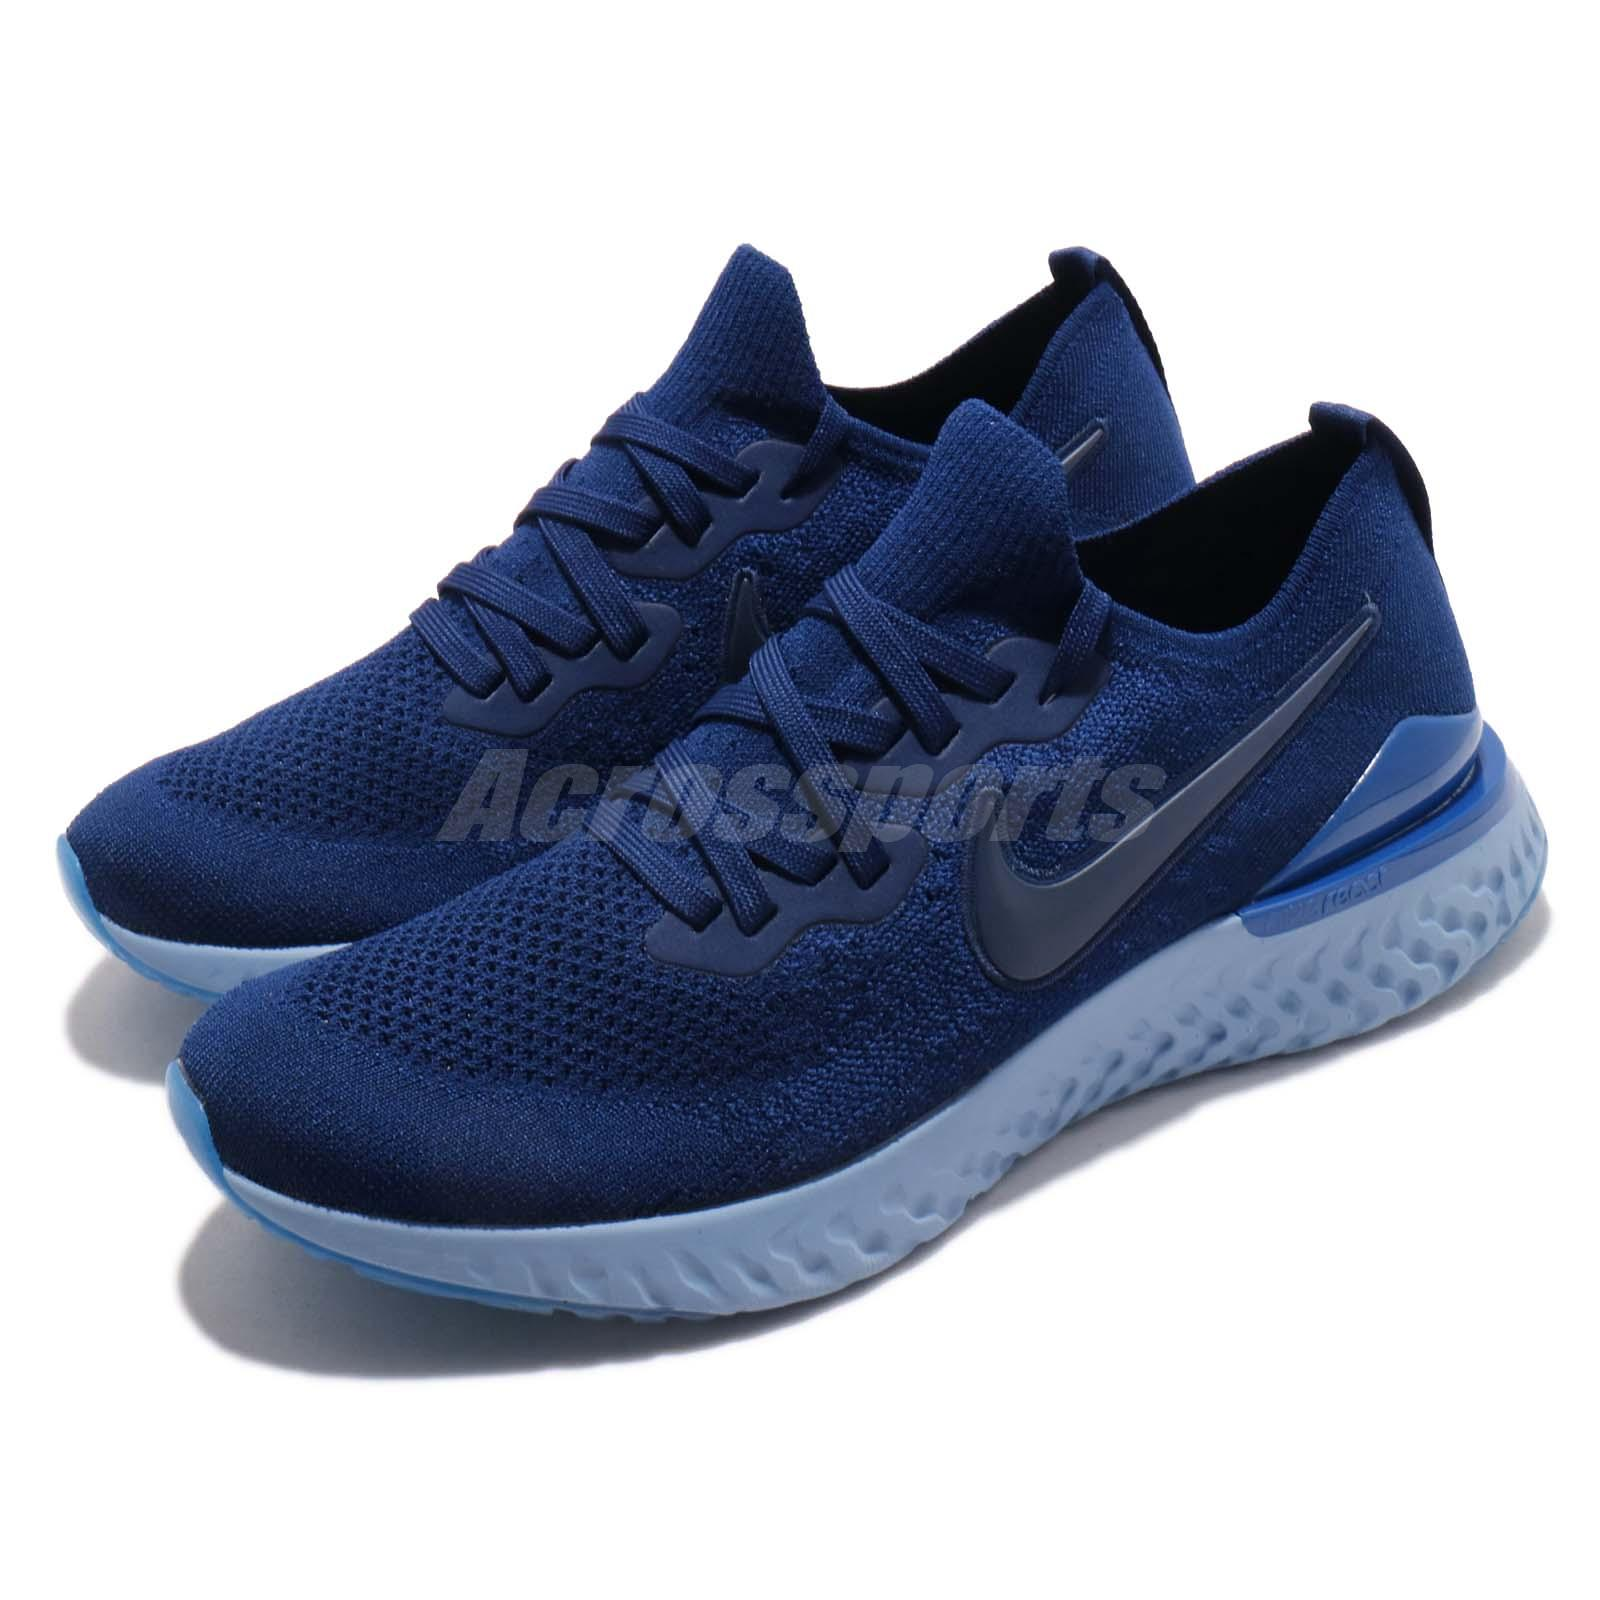 89ec9c5f95bc Details about Nike Epic React Flyknit 2 II Blue Void Men Running Shoes  Sneakers BQ8928-400